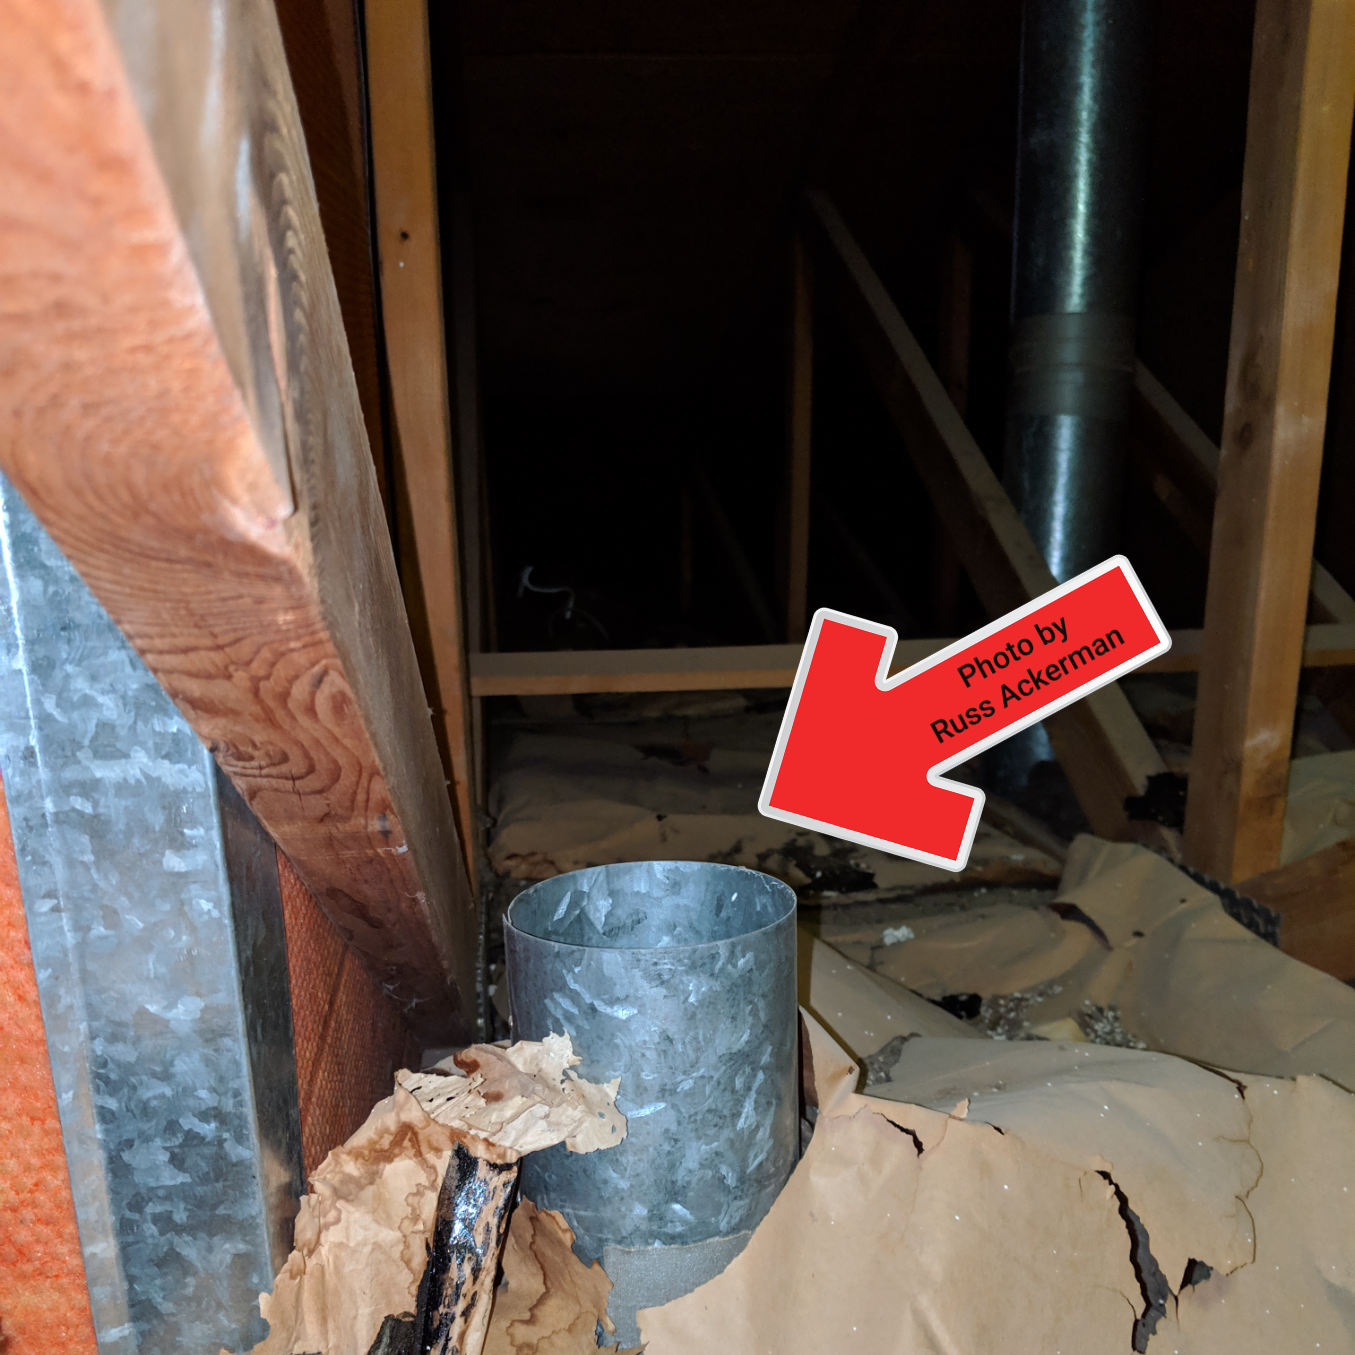 Bathroom exhaust fans that vent into the attic create a perfect environment for mold growth and delaminated roof sheathing, both which could weaken the roof structure.